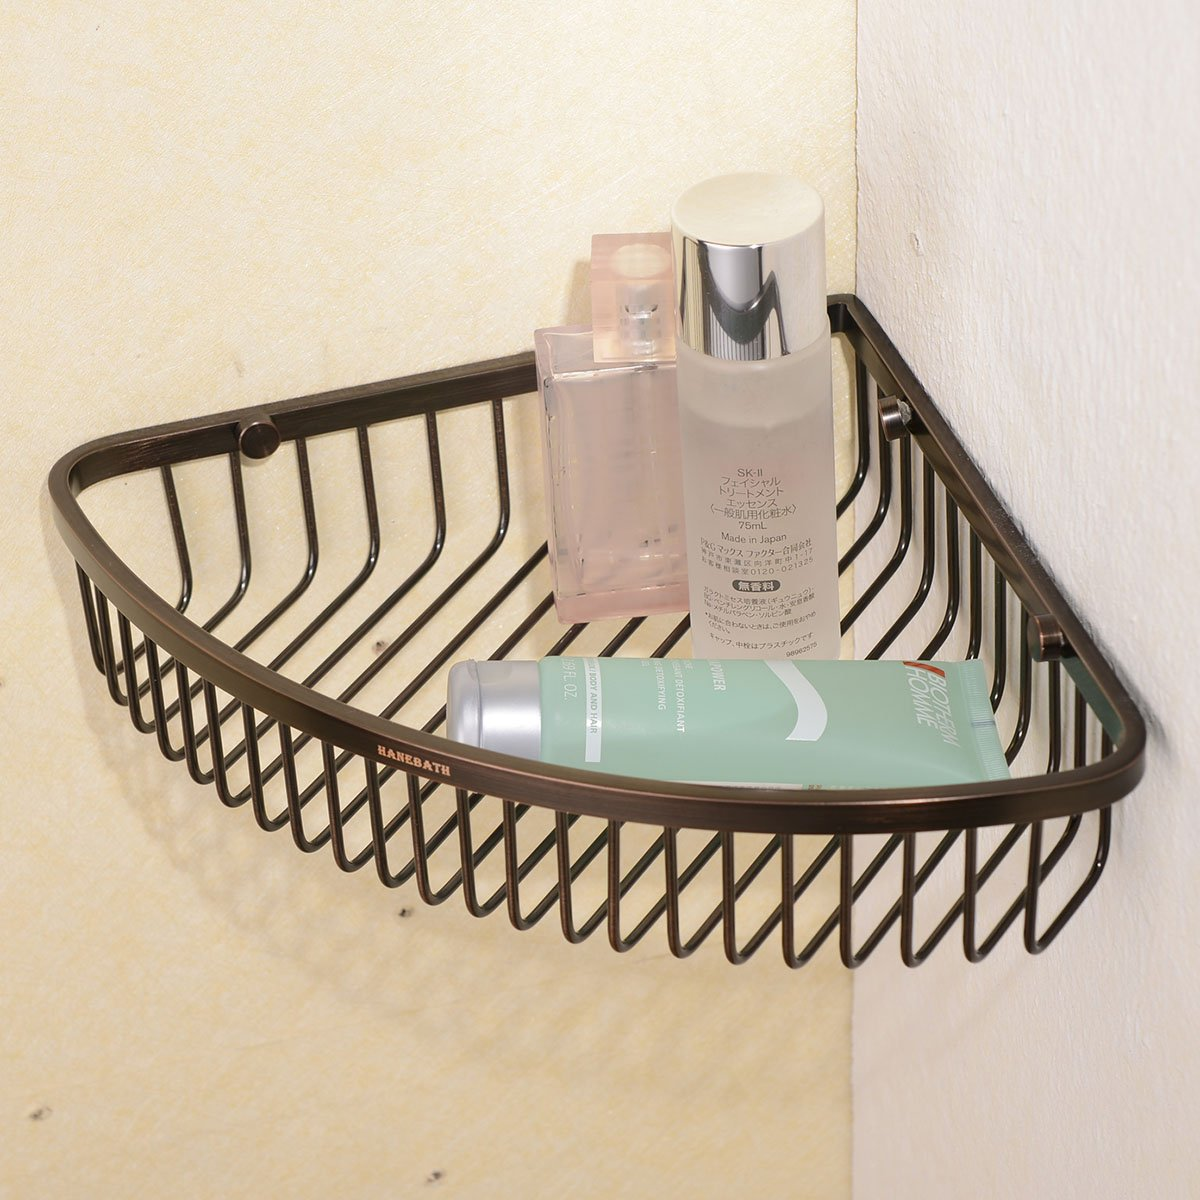 Corner Shower Caddy - Stainless Steel Bathroom Wall Mounted Storage ...